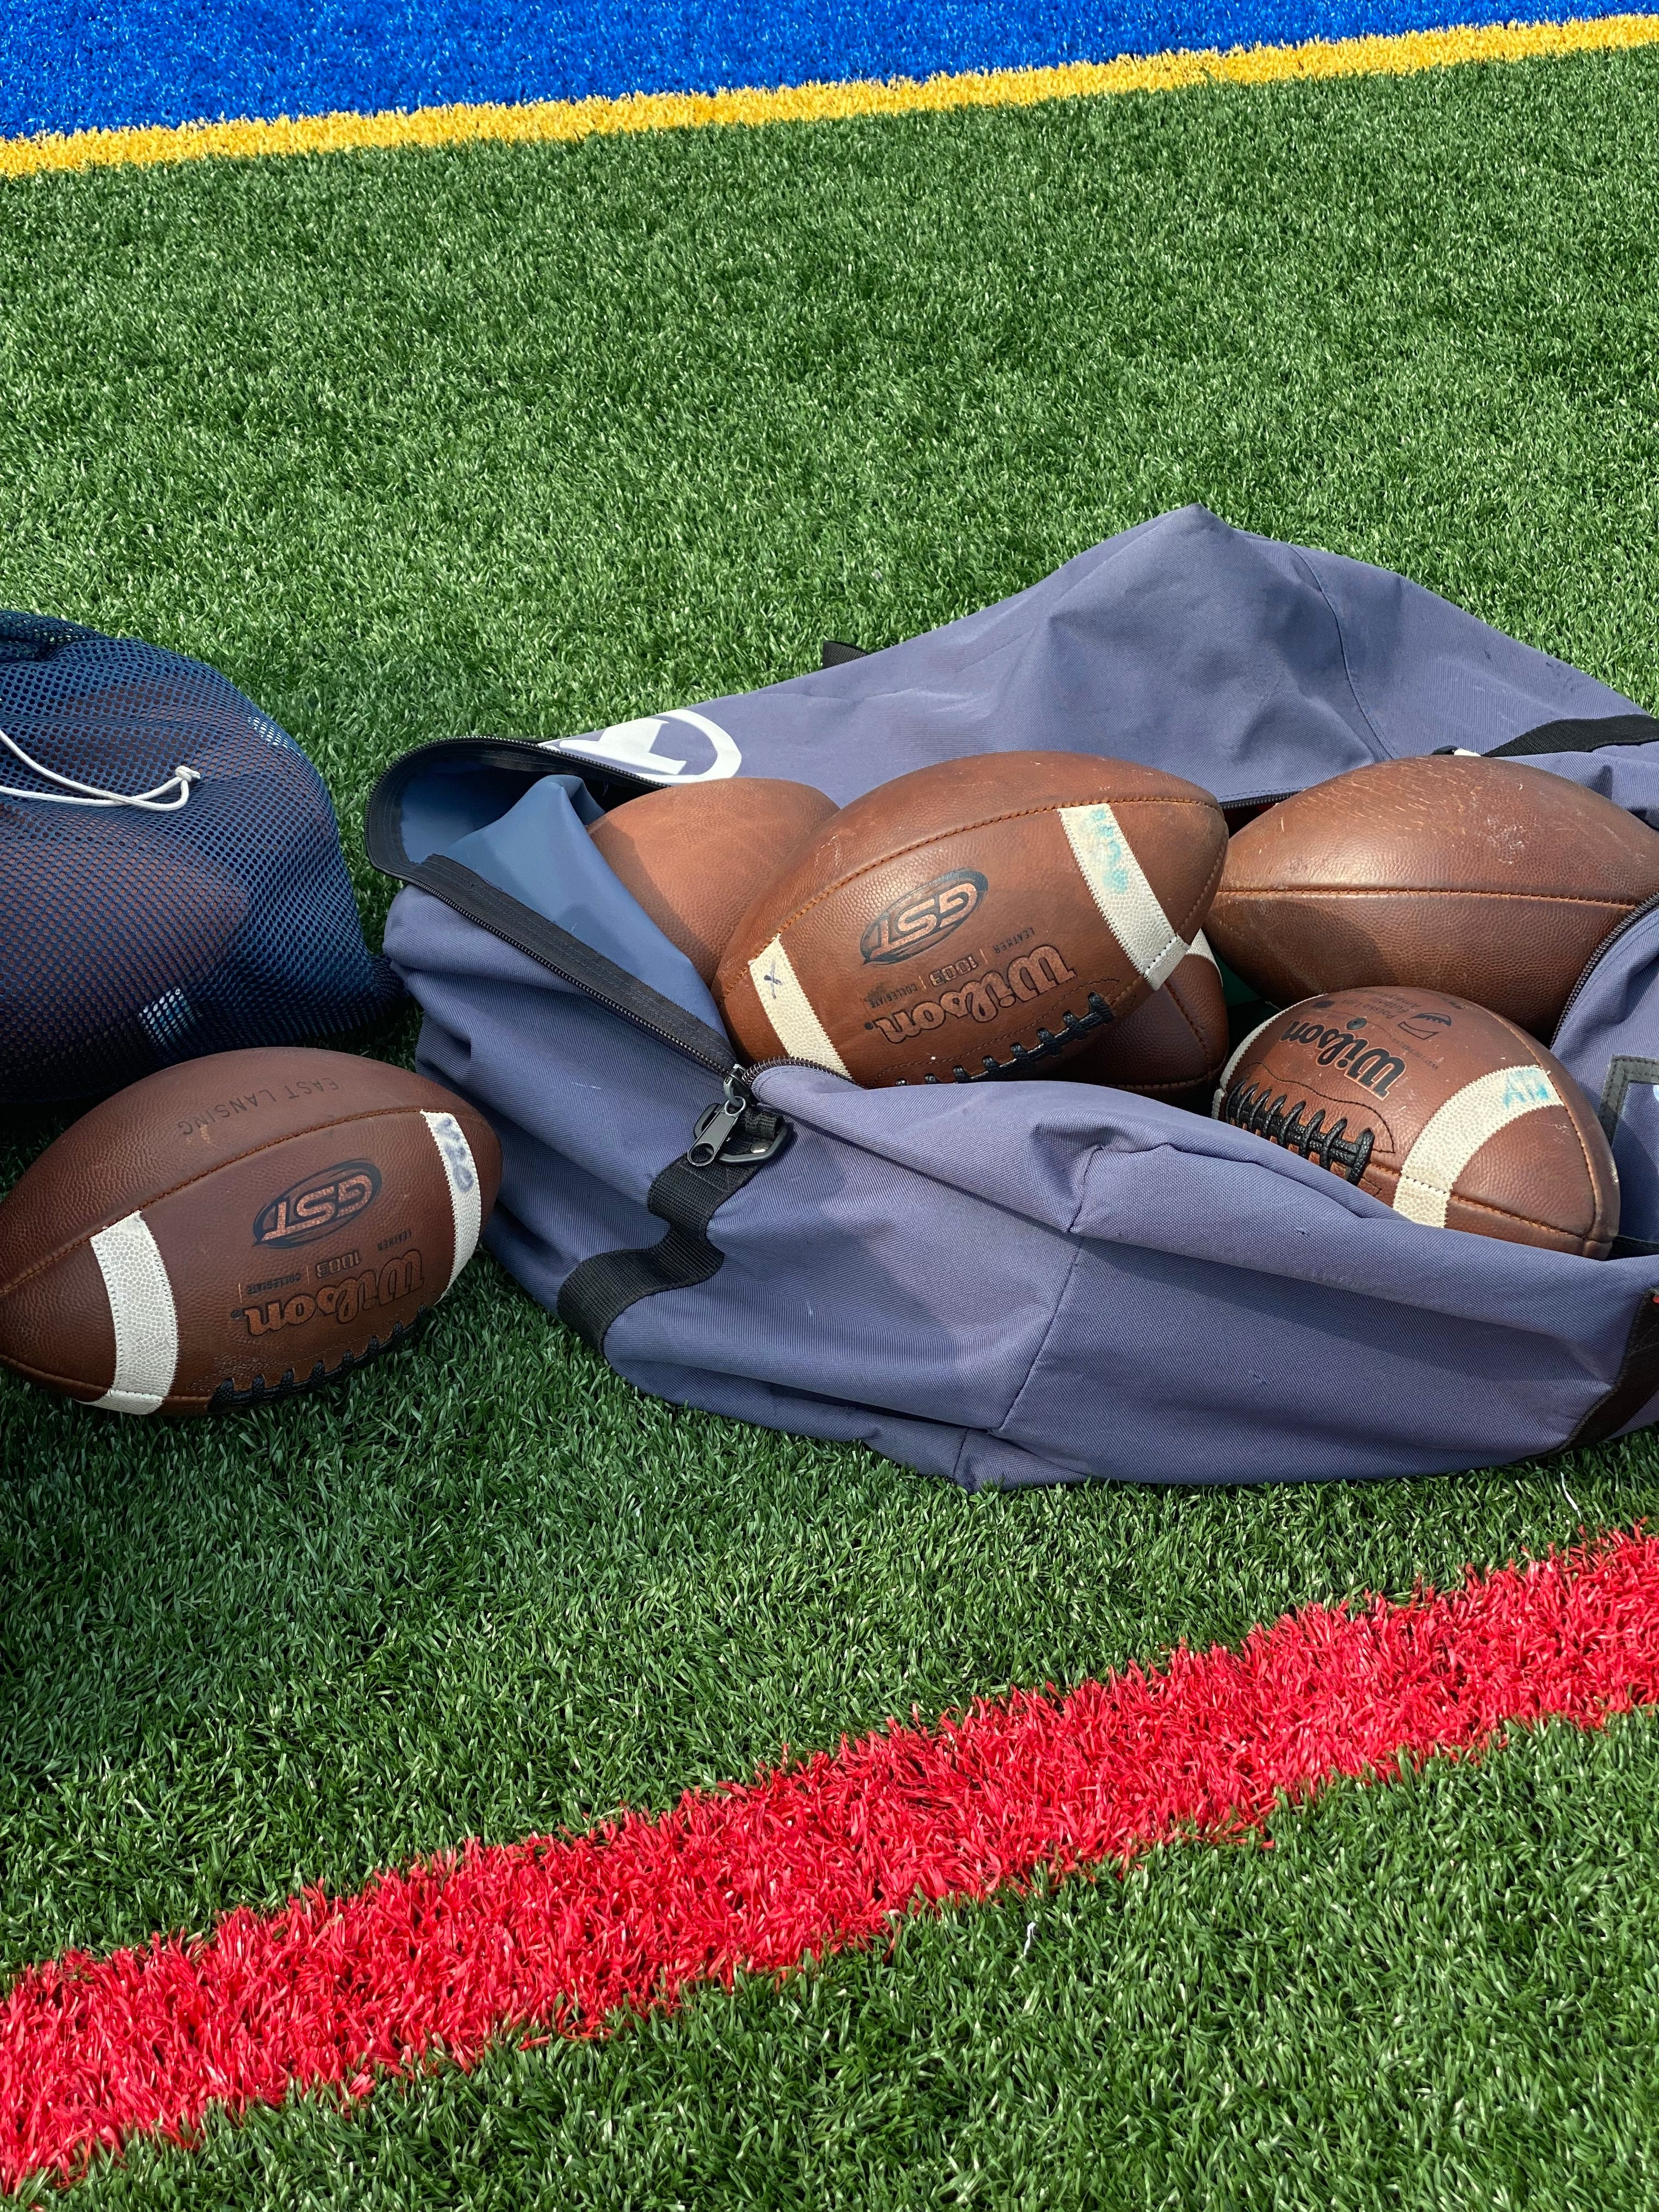 Who was the Player of the Week for the opening round of sectional football?